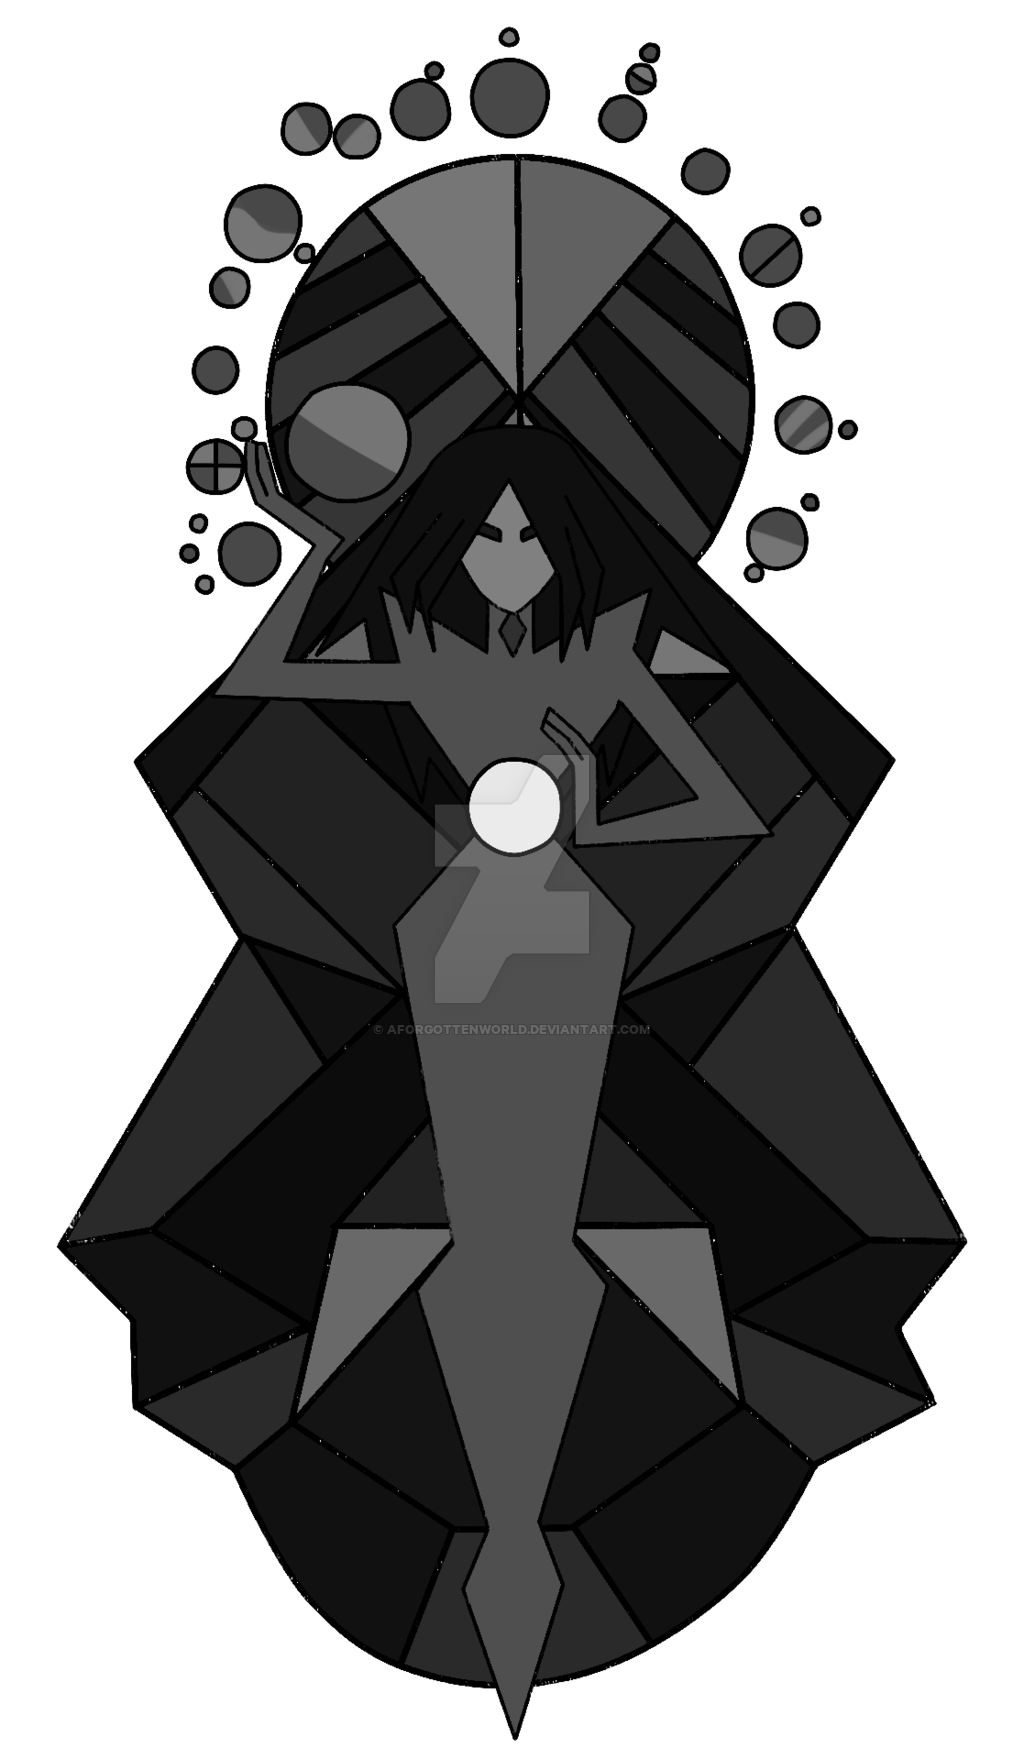 More Powerful Than White Diamond She Is The Most Powerful Diamond In The Galaxy In Steven Universe Diamond White Diamond Steven Universe Steven Universe Fanart